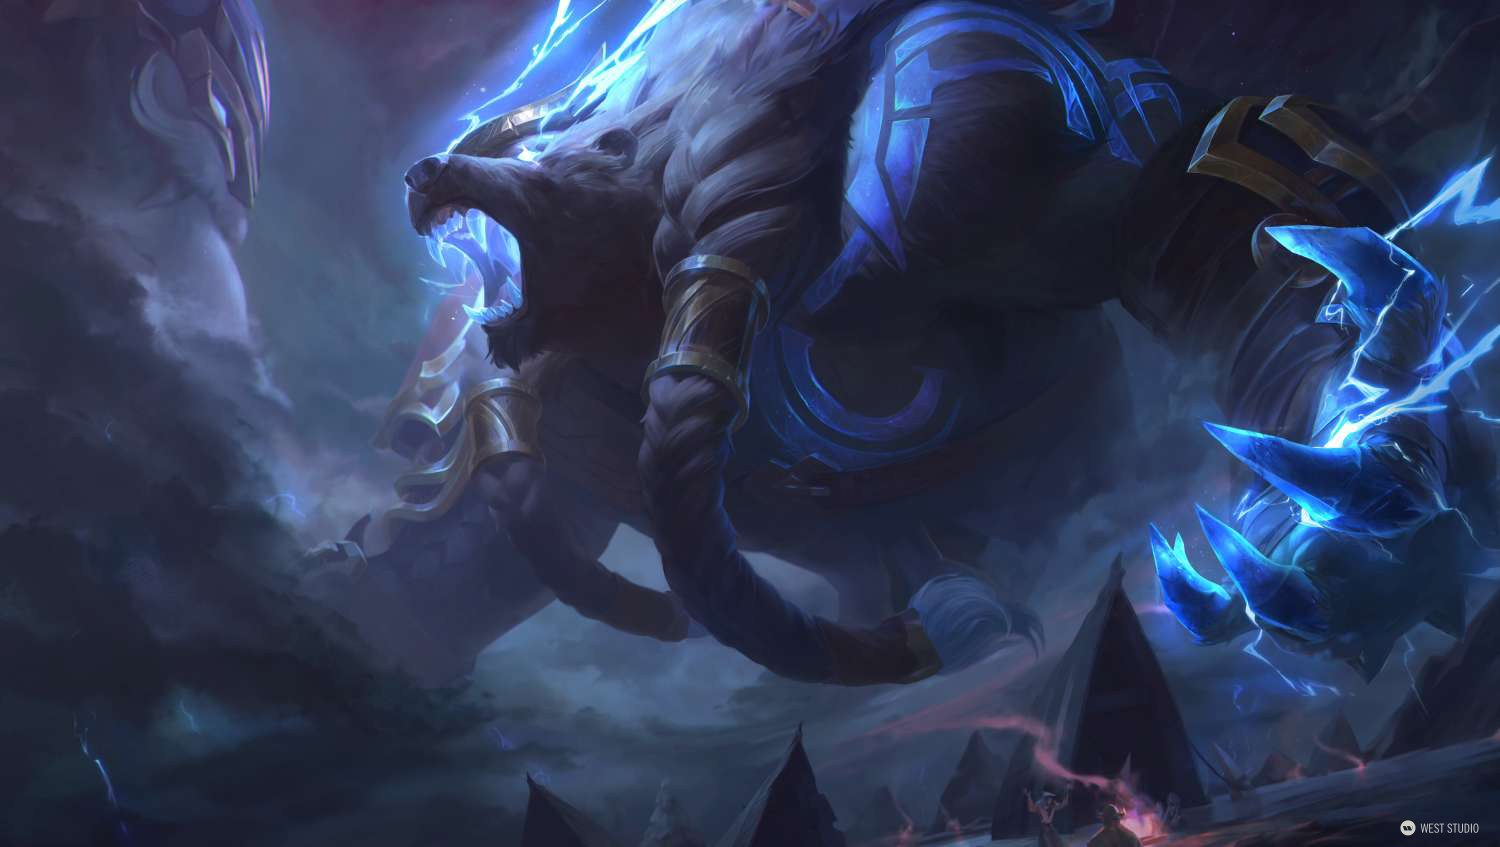 League of Legends, Riot Games, LOL, Splash, Illustration, West Studio, Mingchen Shen, Skins, Rendering,